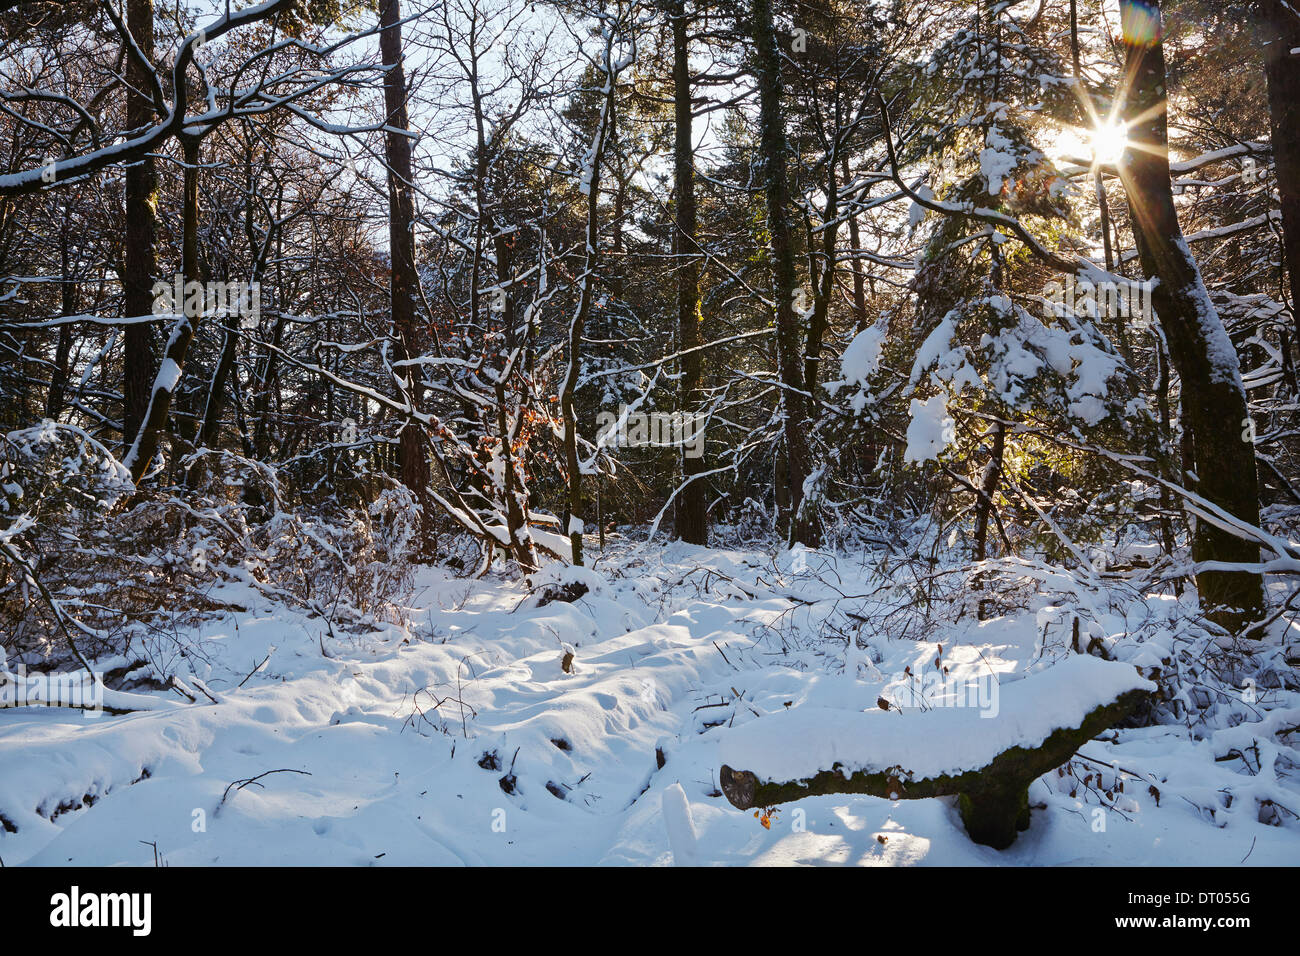 A conifer forest in deep snow, in the Haldon Hills near Mamhead, near Exeter, Devon, Great Britain. - Stock Image